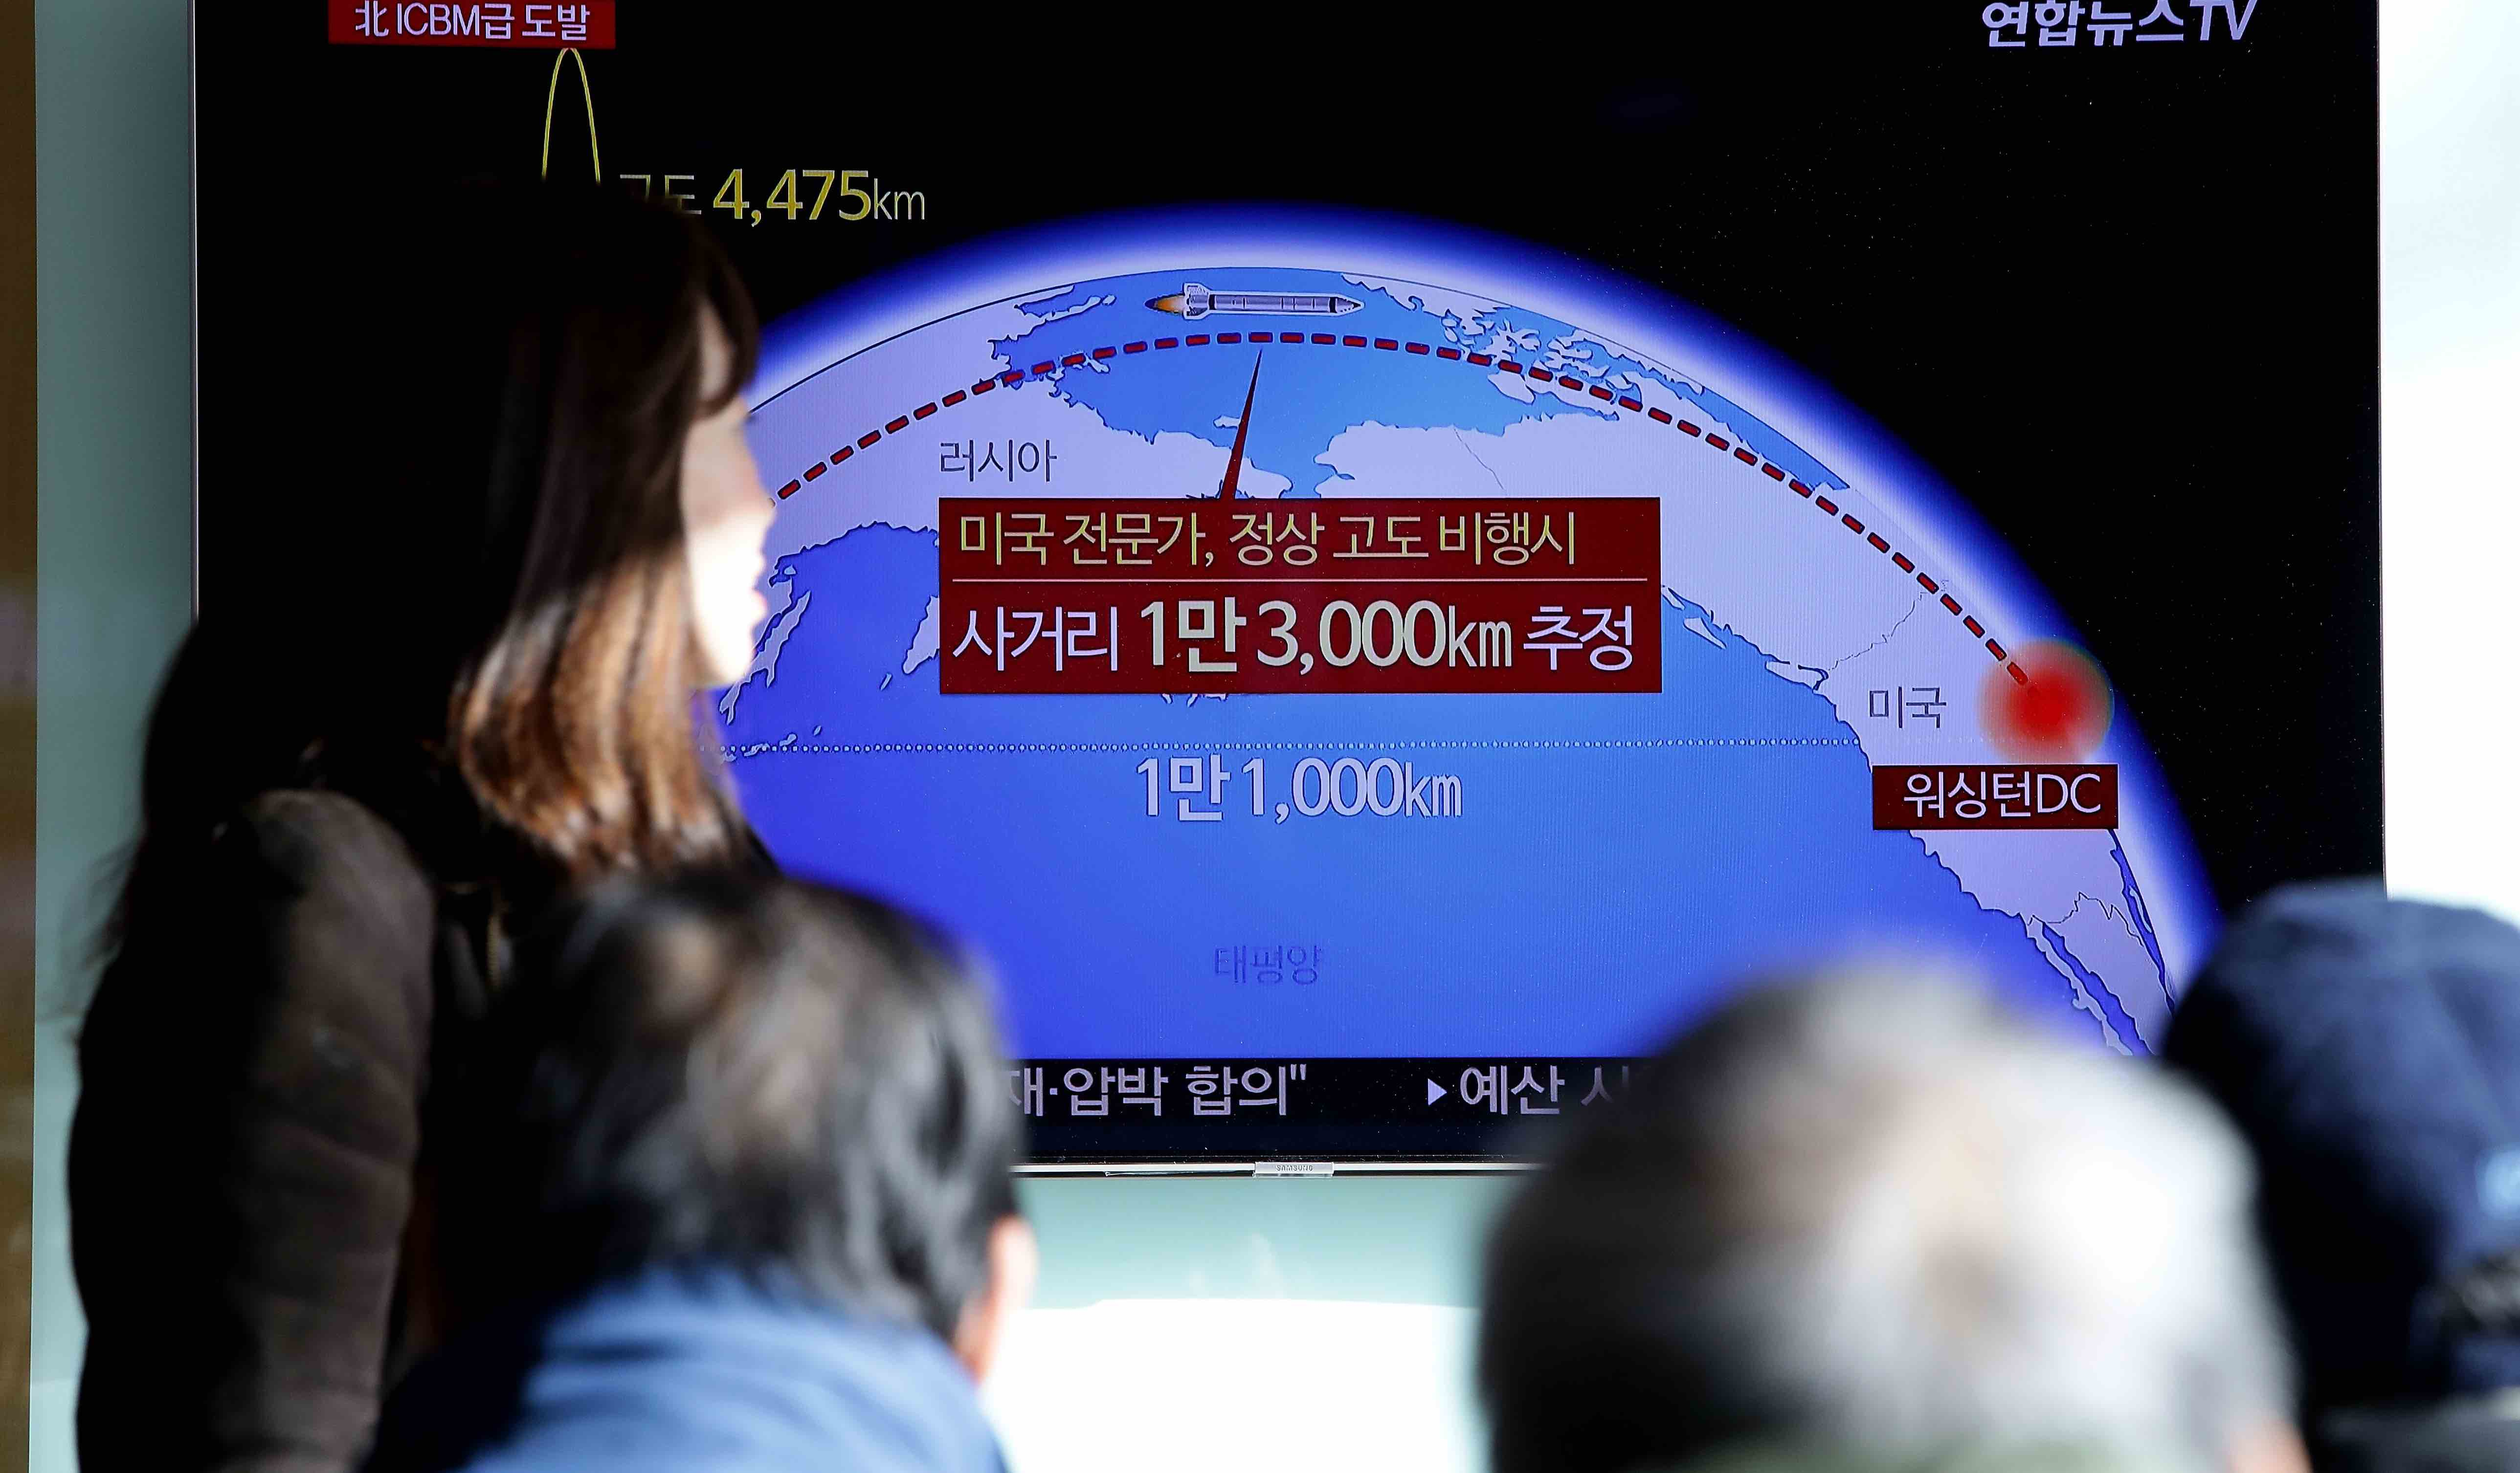 Television reports of North Korea's test-launch of a ballistic missile in November (Photo by Chung Sung-Jun/Getty)